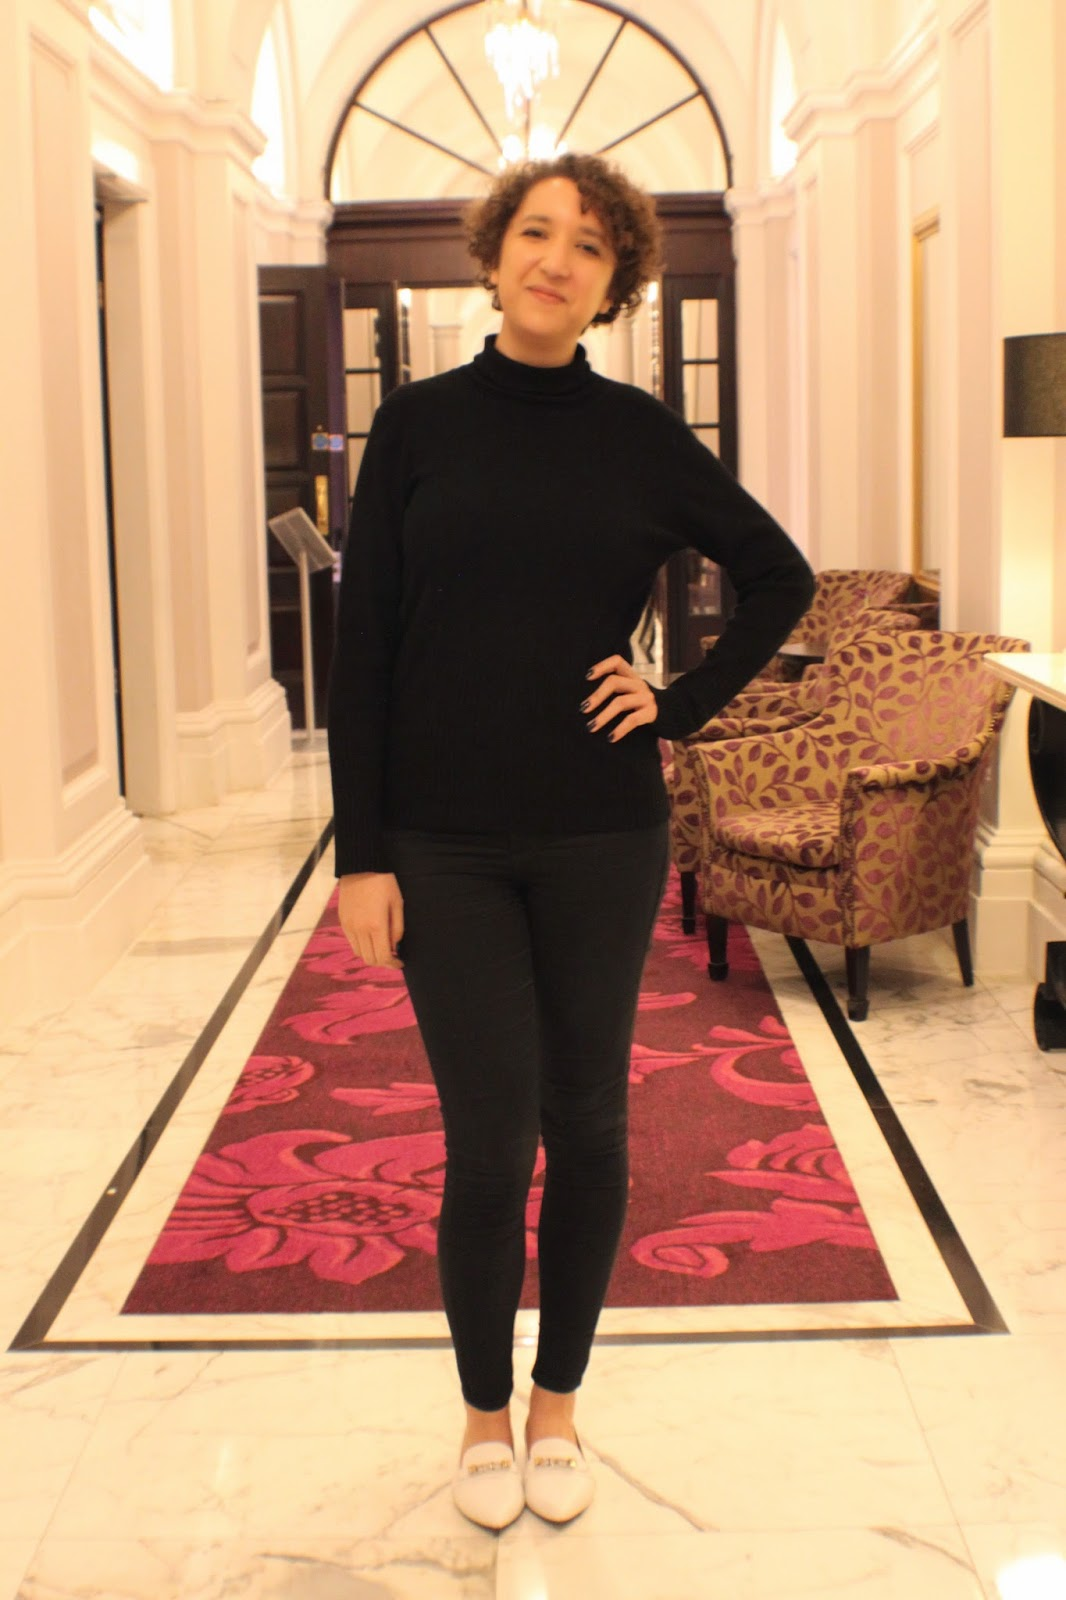 woman in all black outfit with white shoes